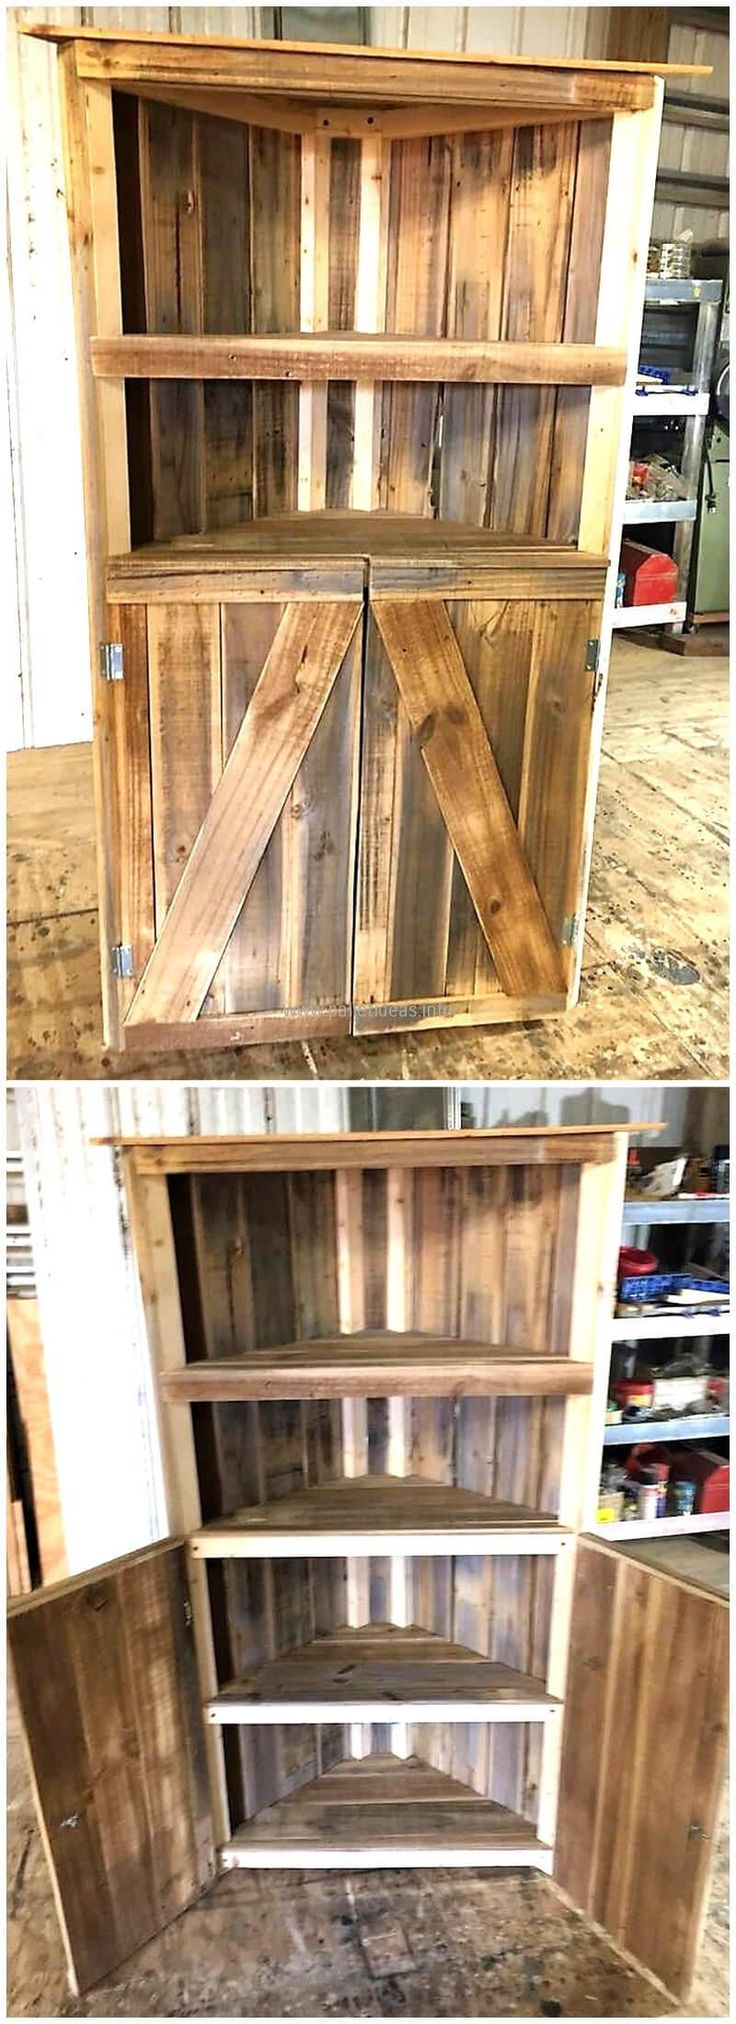 See an upcycled wood pallet corner shelf cabinet and copy this idea if you were looking to buy a furniture piece to adorn the corner because it looks dull. It is free to place the decorative items like the photo frame or the small vases with colorful flowers planted in them for refreshing the eyes as well as air.